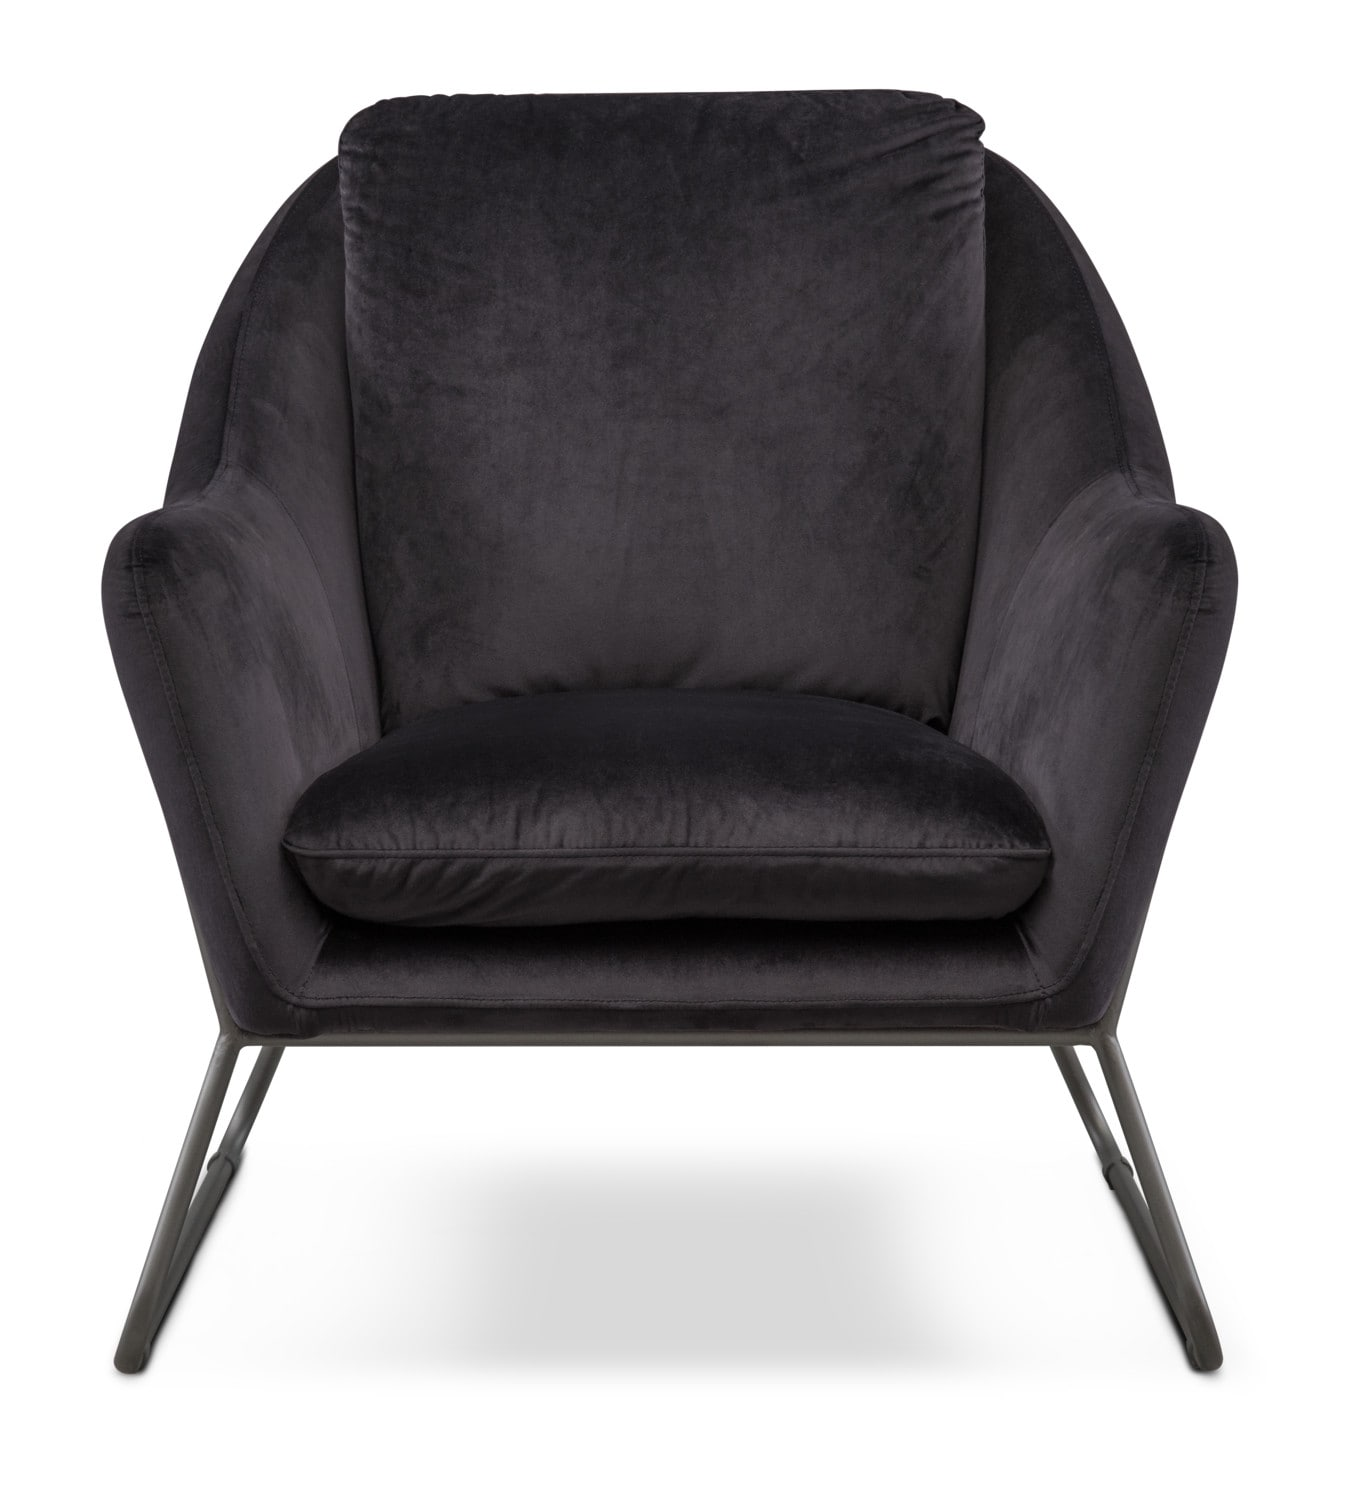 Attirant Living Room Furniture   Willow Accent Chair   Black